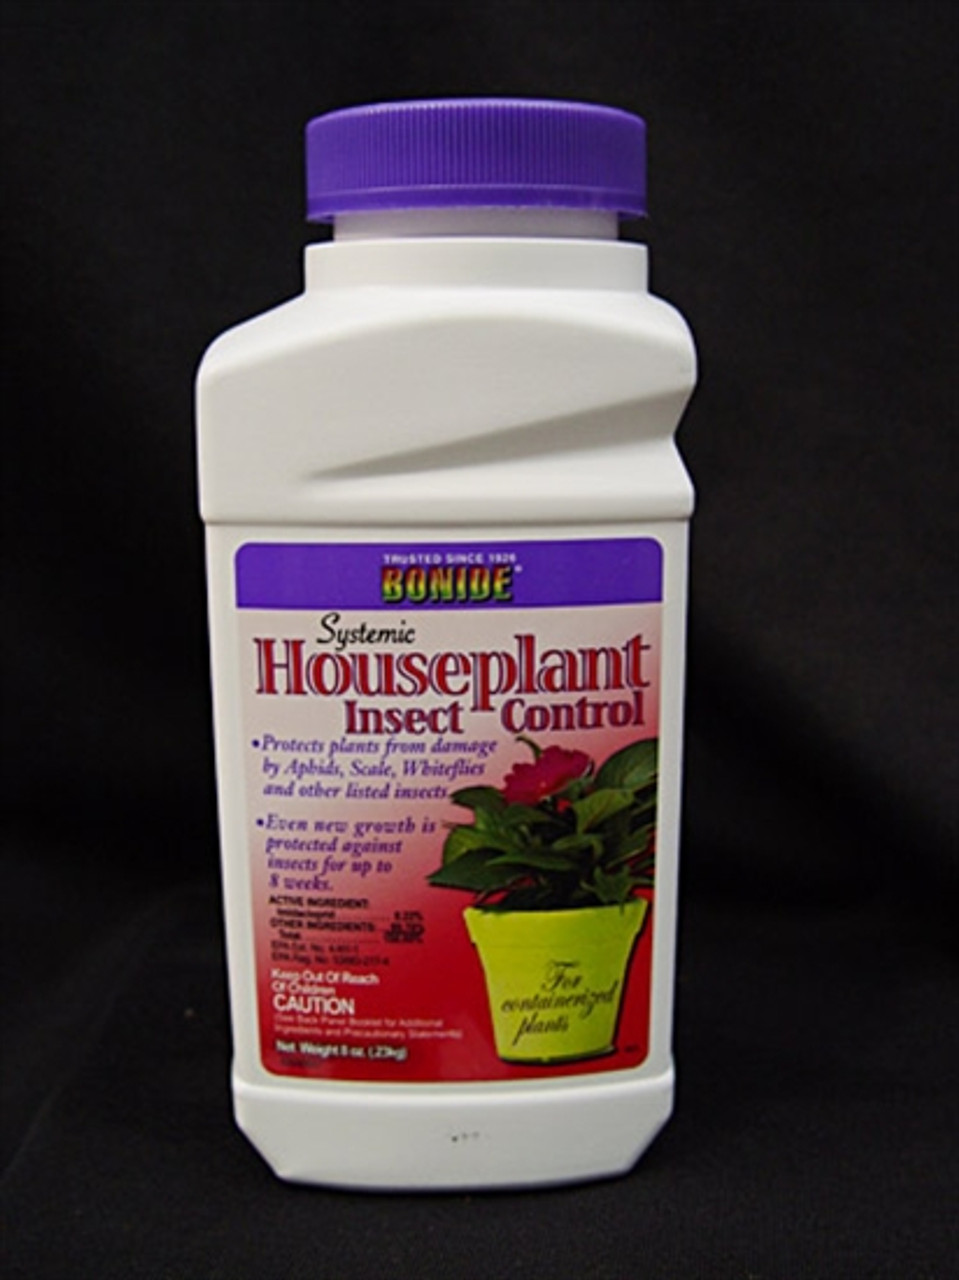 Bonide Systemic Houseplant Insect Control Orchidweb